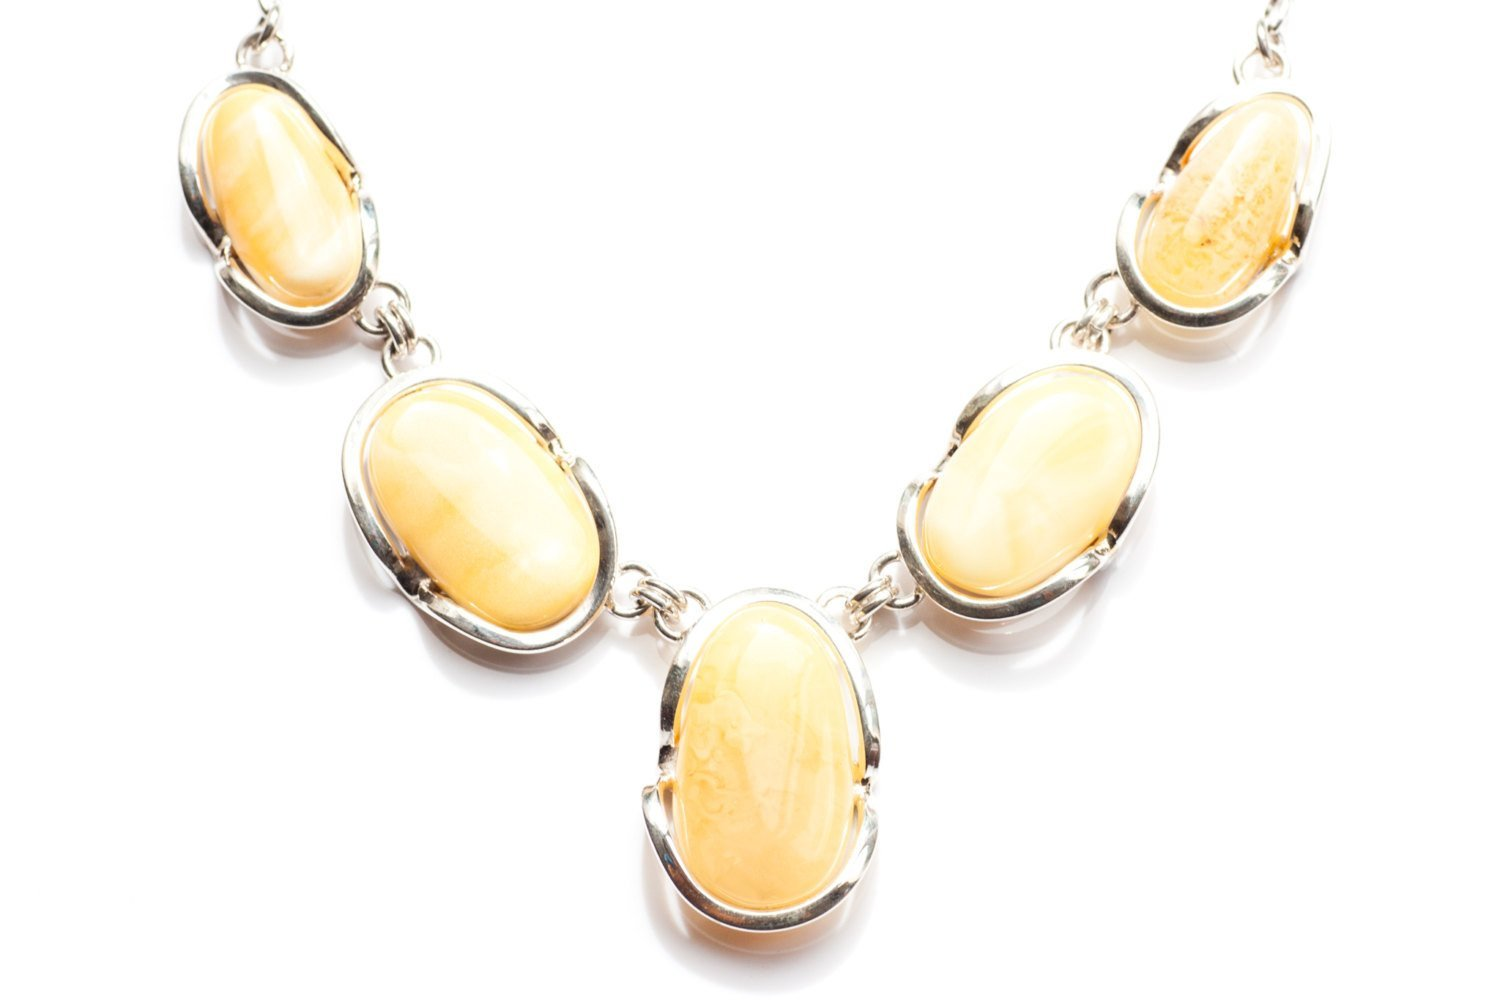 Baltic Beauty Necklaces Butterscotch Amber Necklace